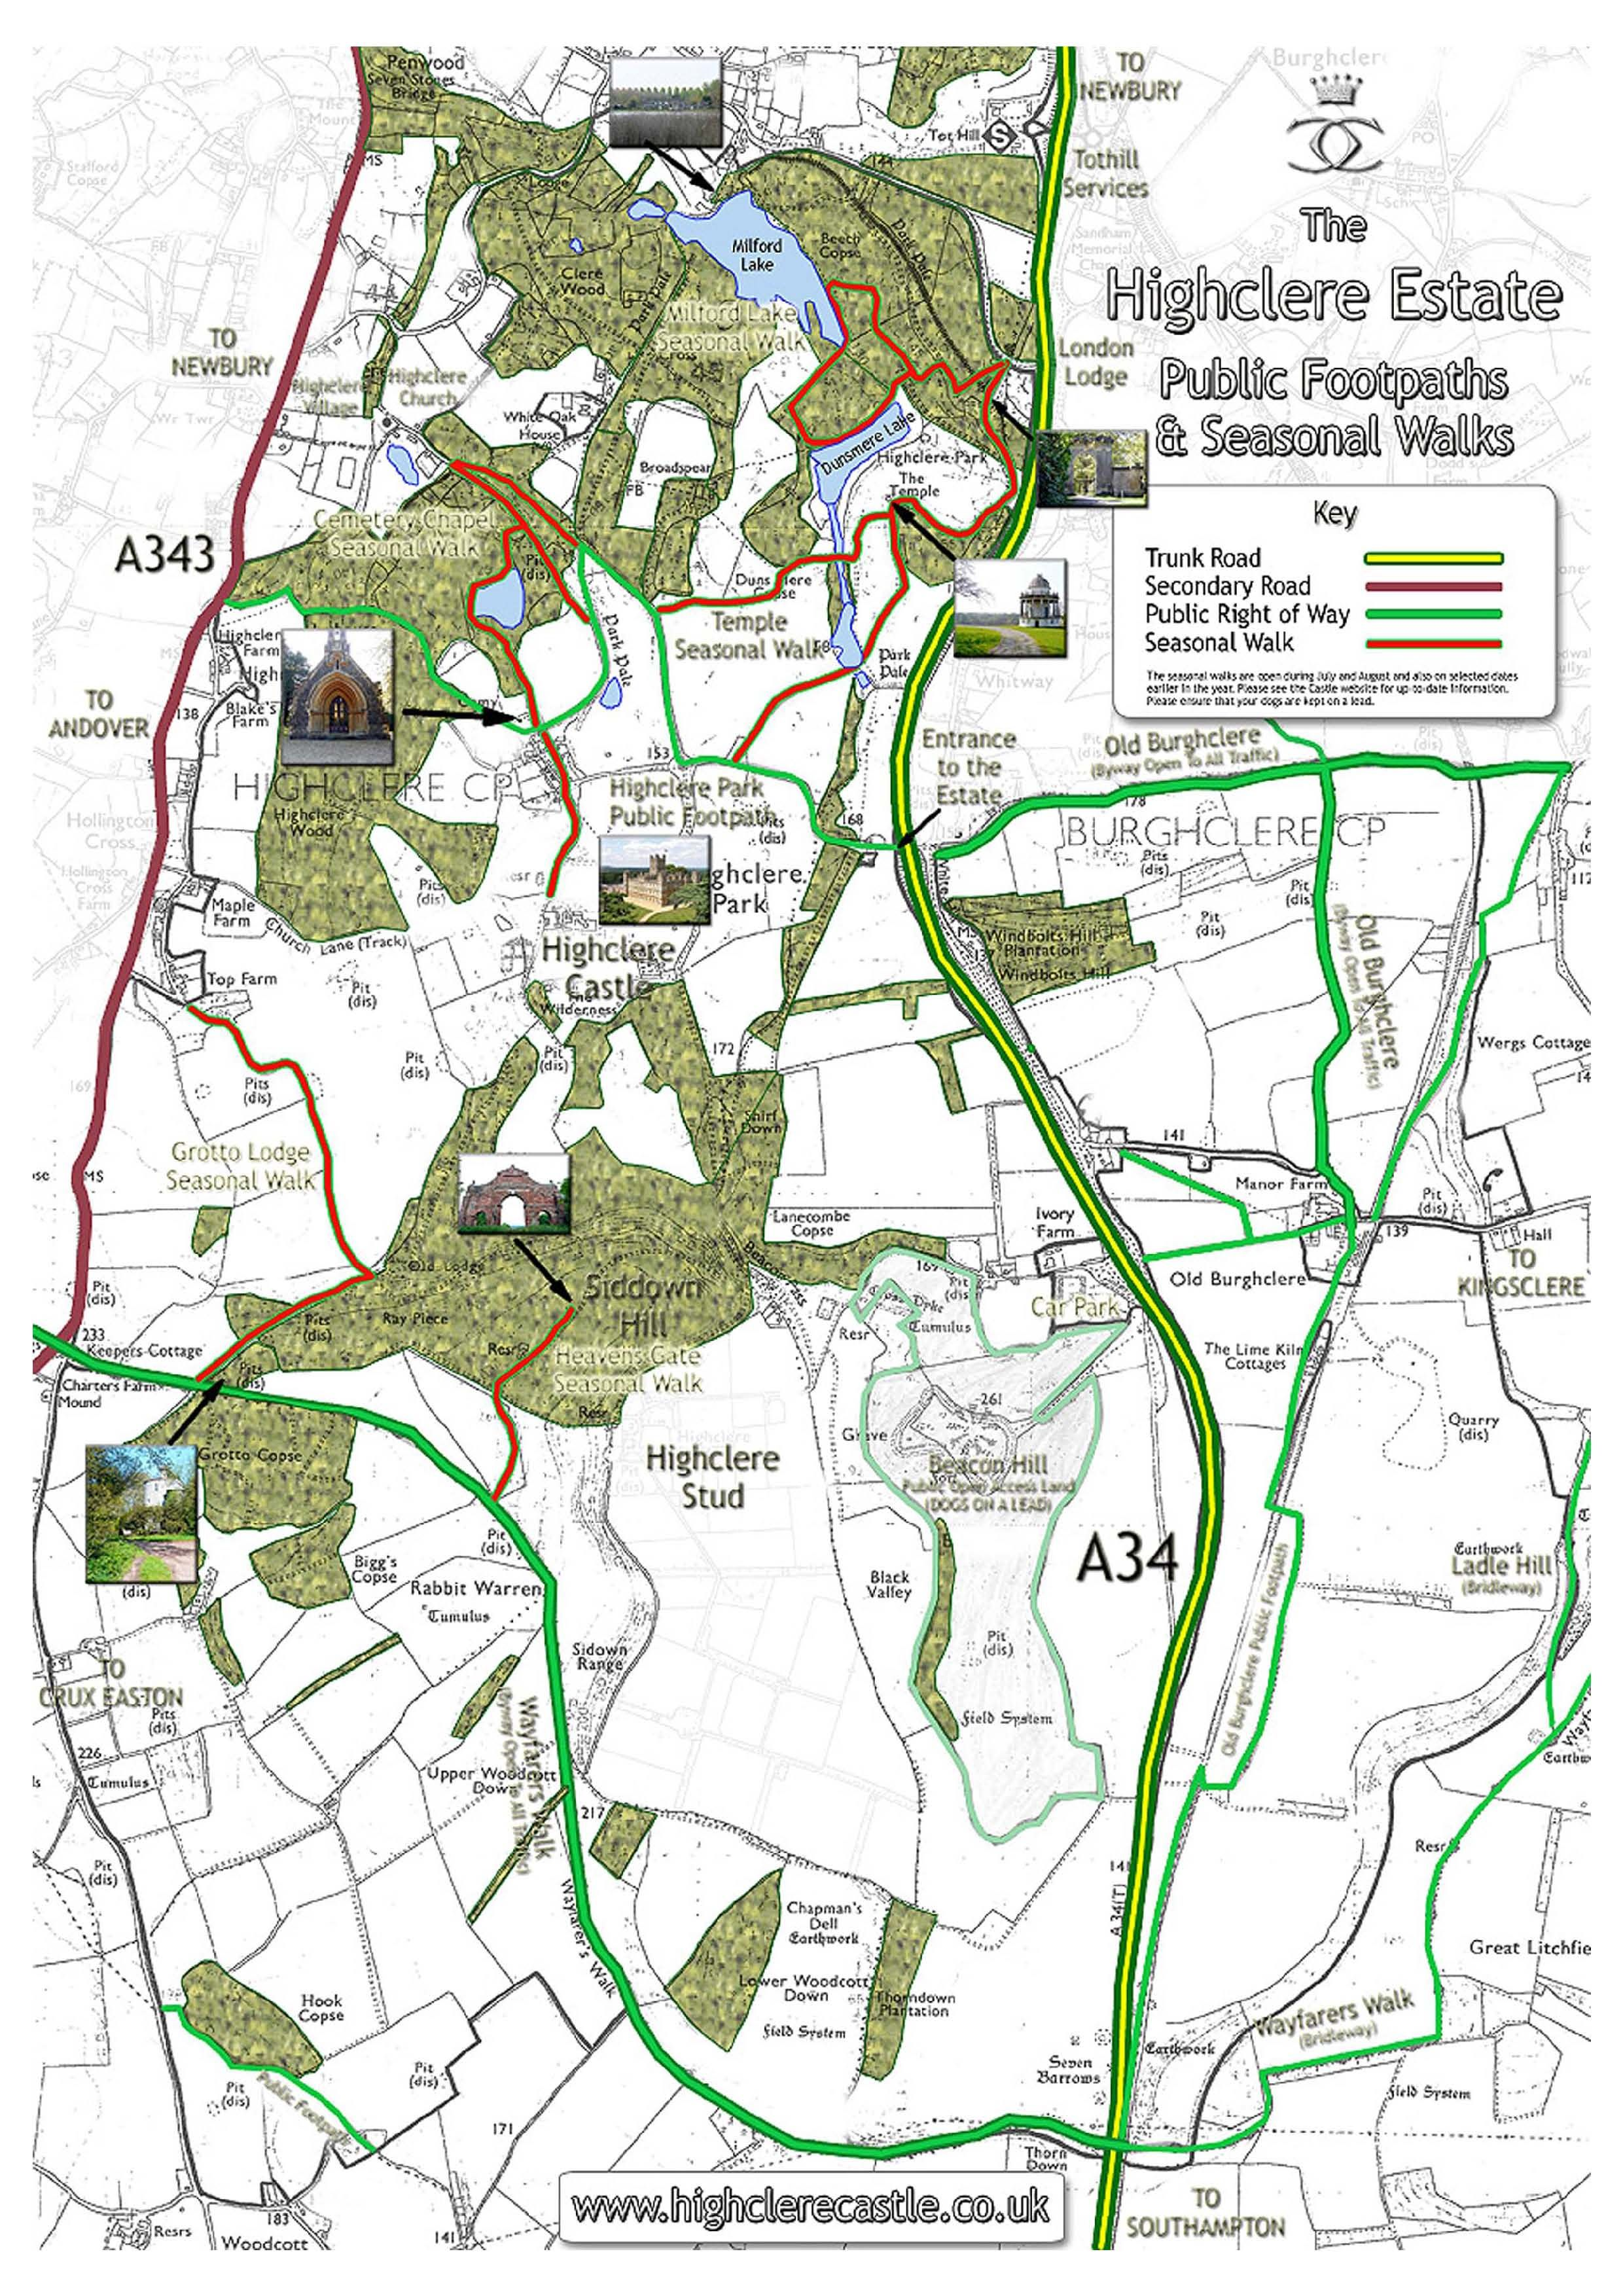 Highclere Castle Map Highclere Castle Estate Map. Hamptonshire, South East England, UK  Highclere Castle Map